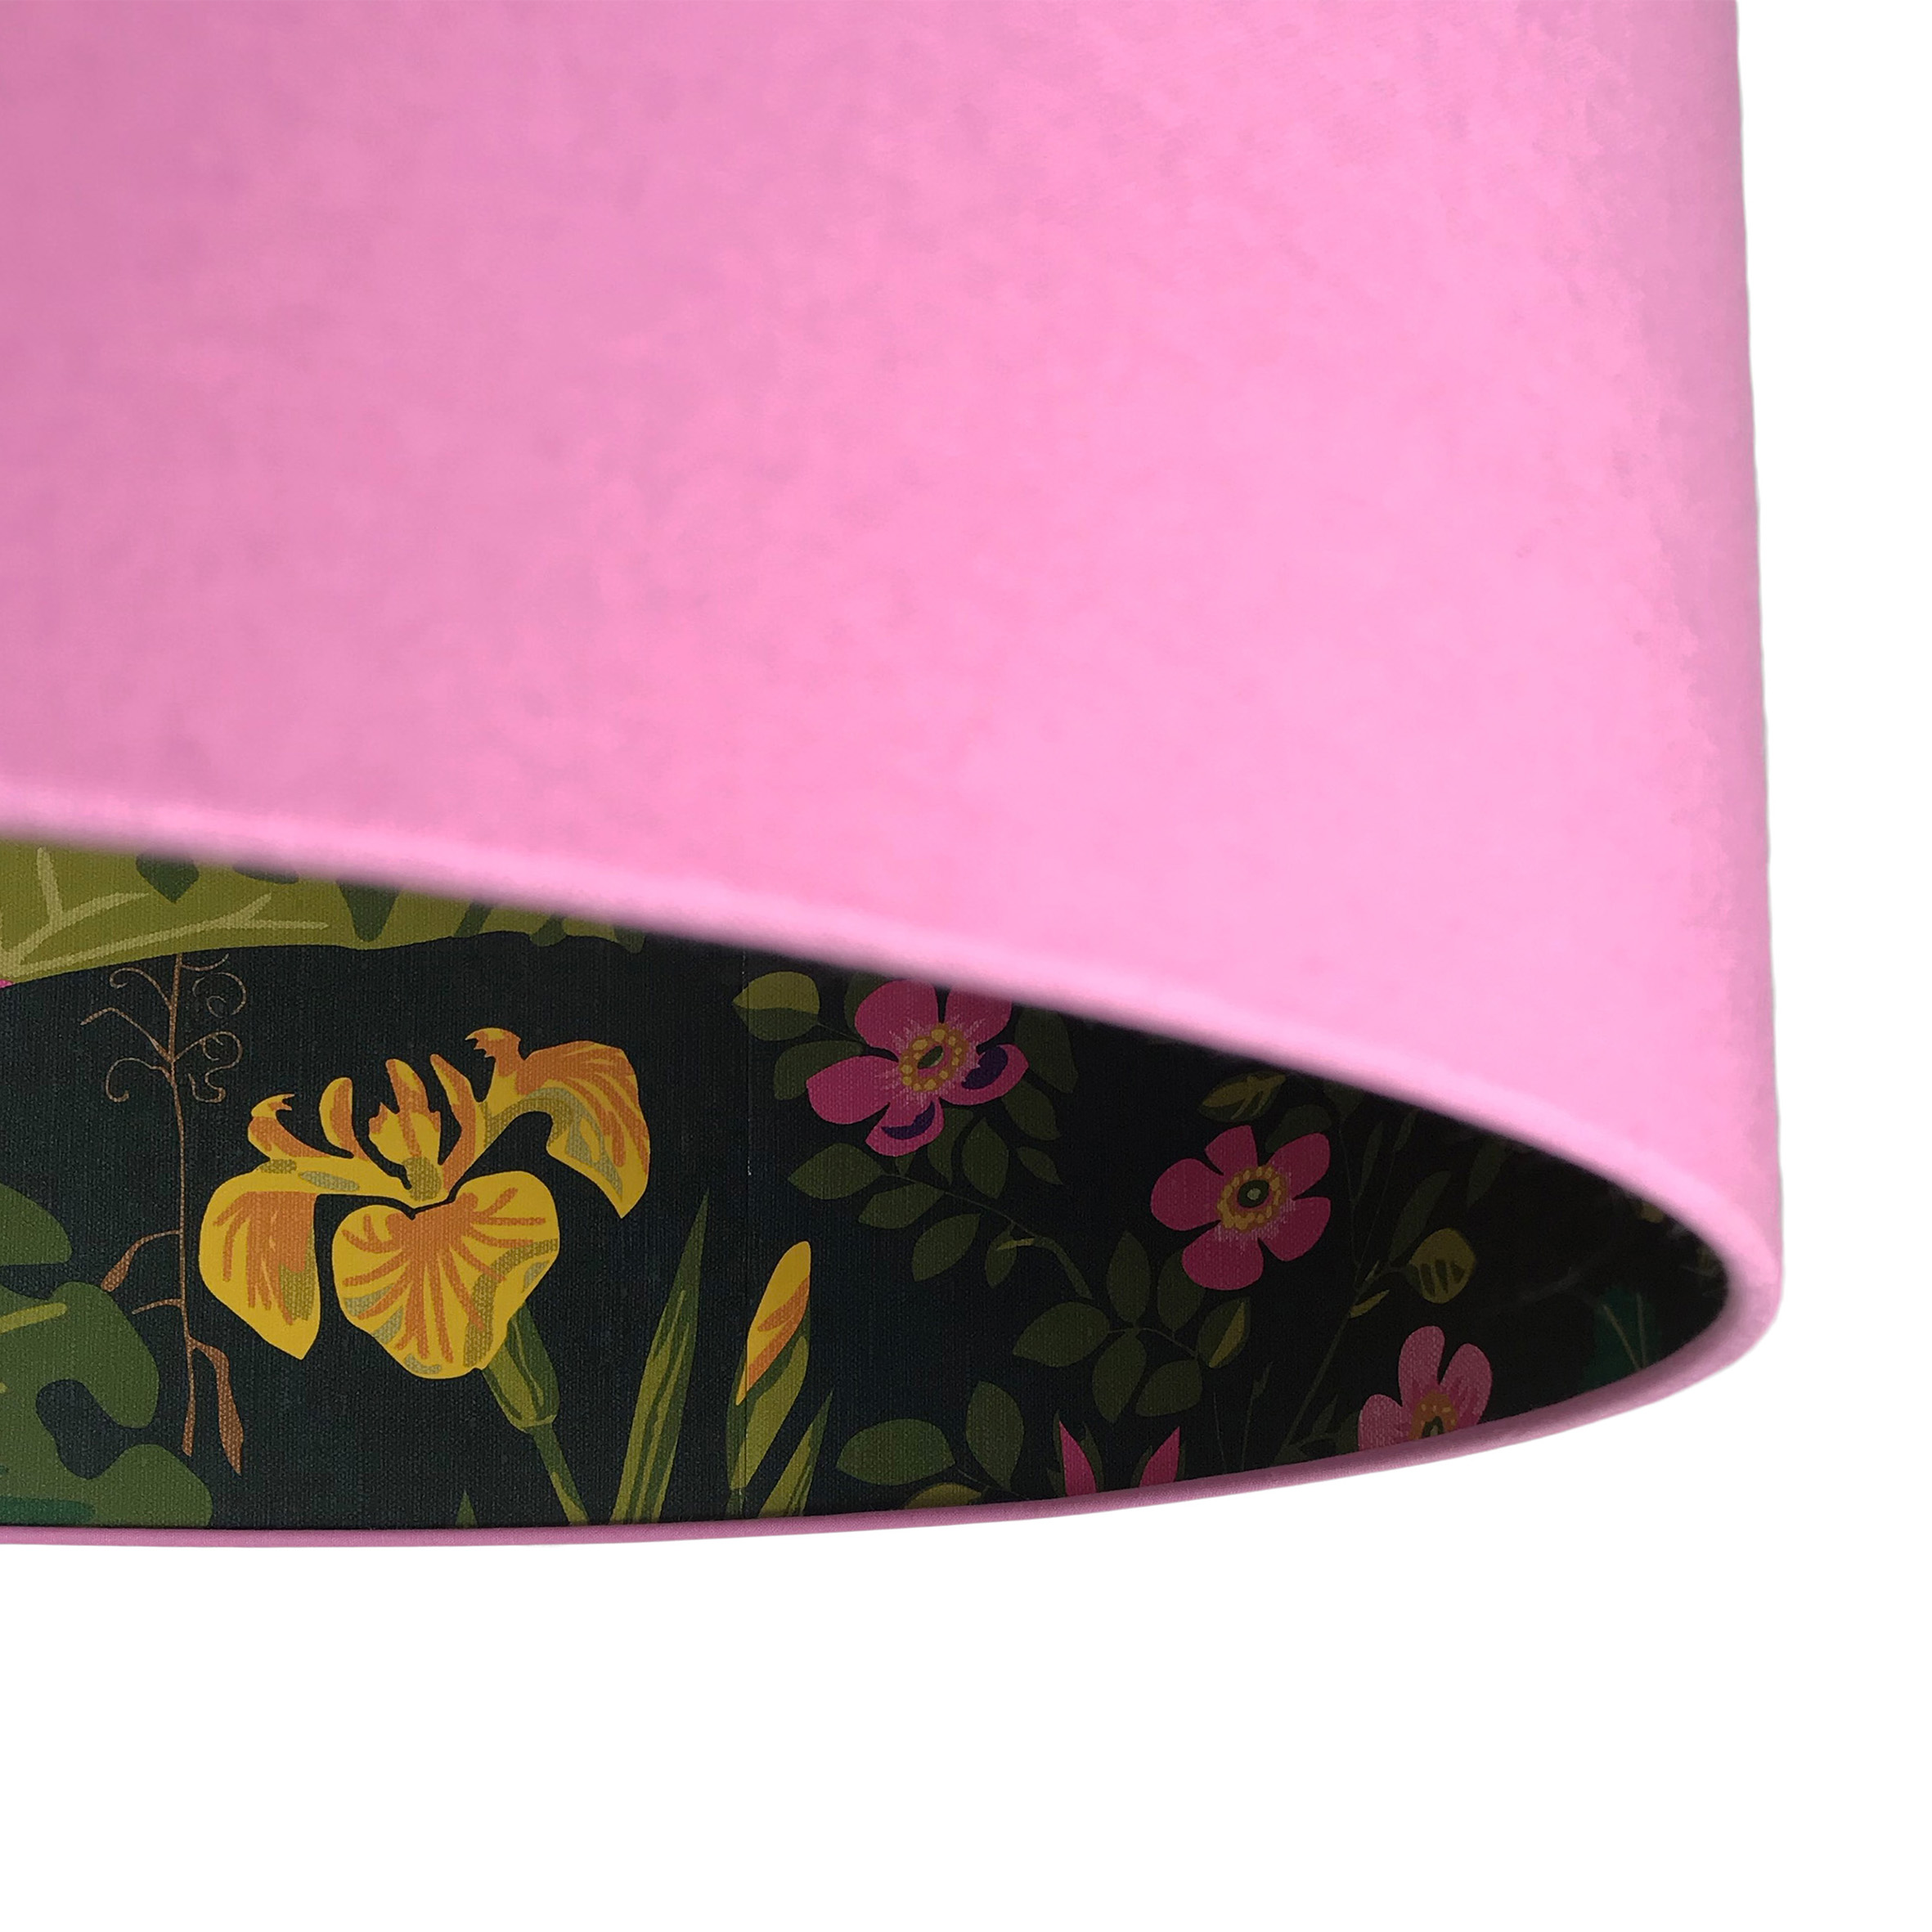 Rabarber Wallpaper Lampshade In Candy Floss Pink Love